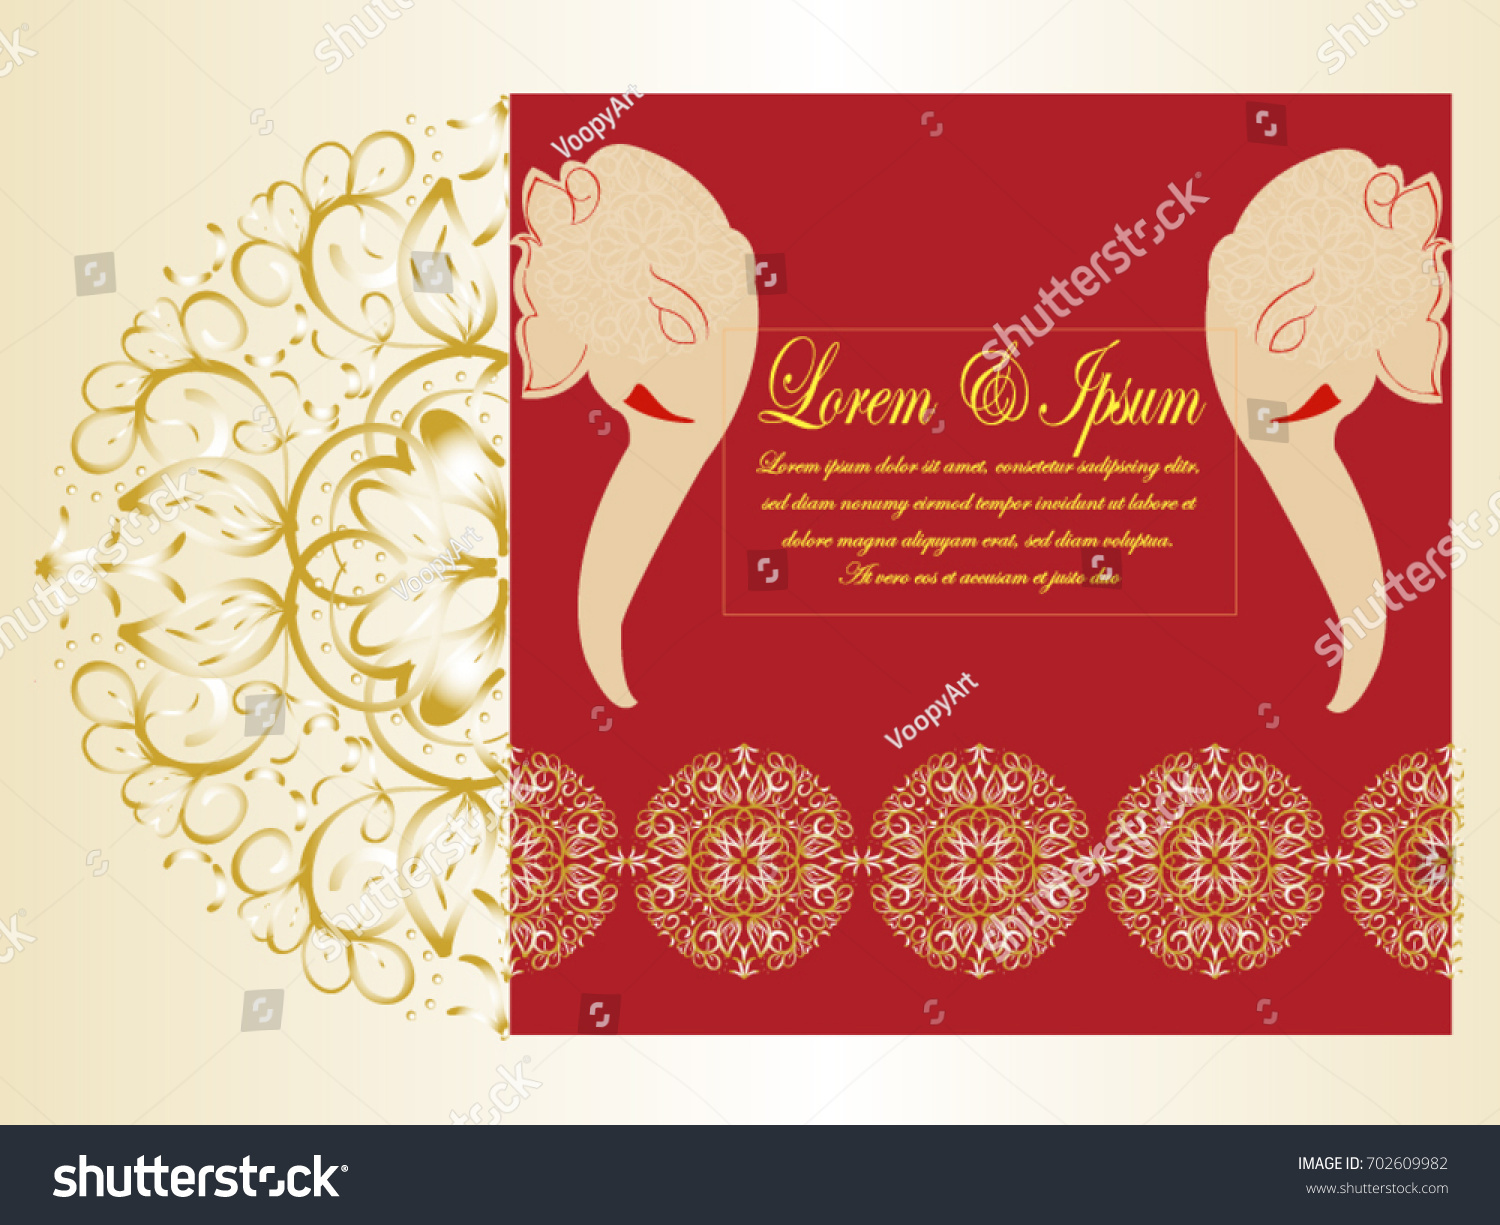 Invitation Elegant Wedding Card Mahdi Mandala Stock Vector (Royalty ...